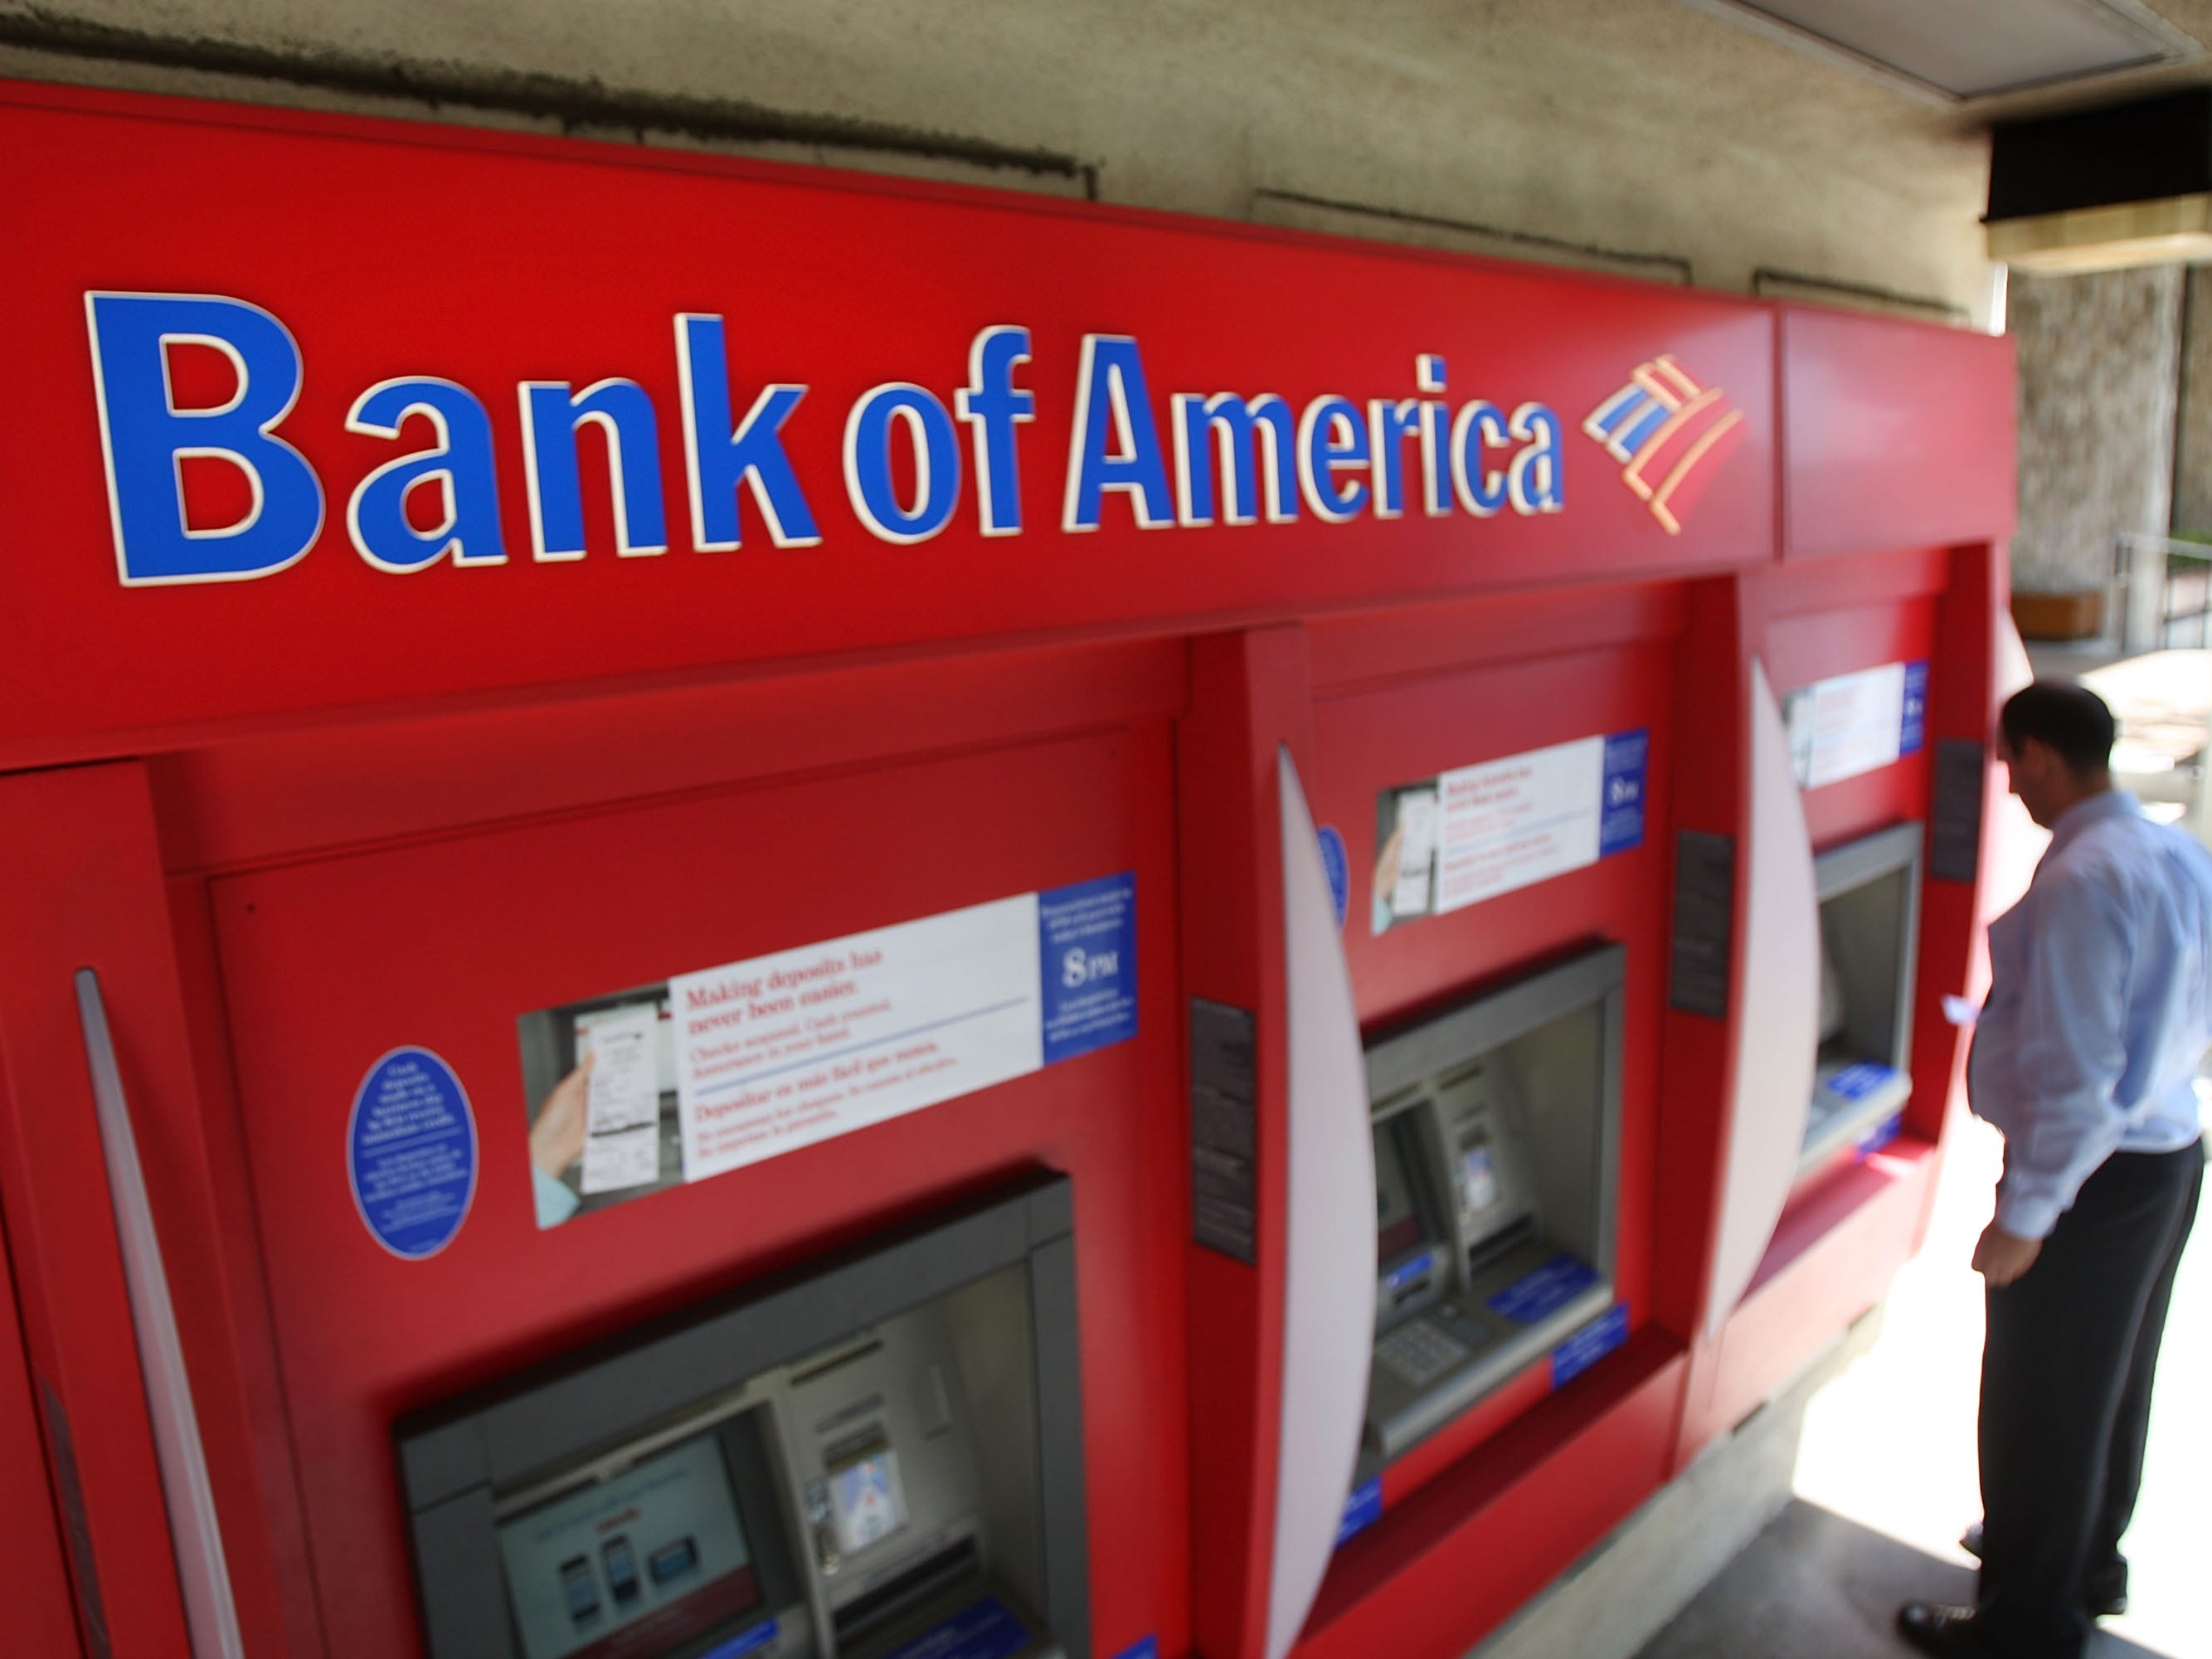 Bank of America, hiring 260. The bank and financial-services company is adding positions in the Phoenix area. More info: careers.bankofamerica.com.